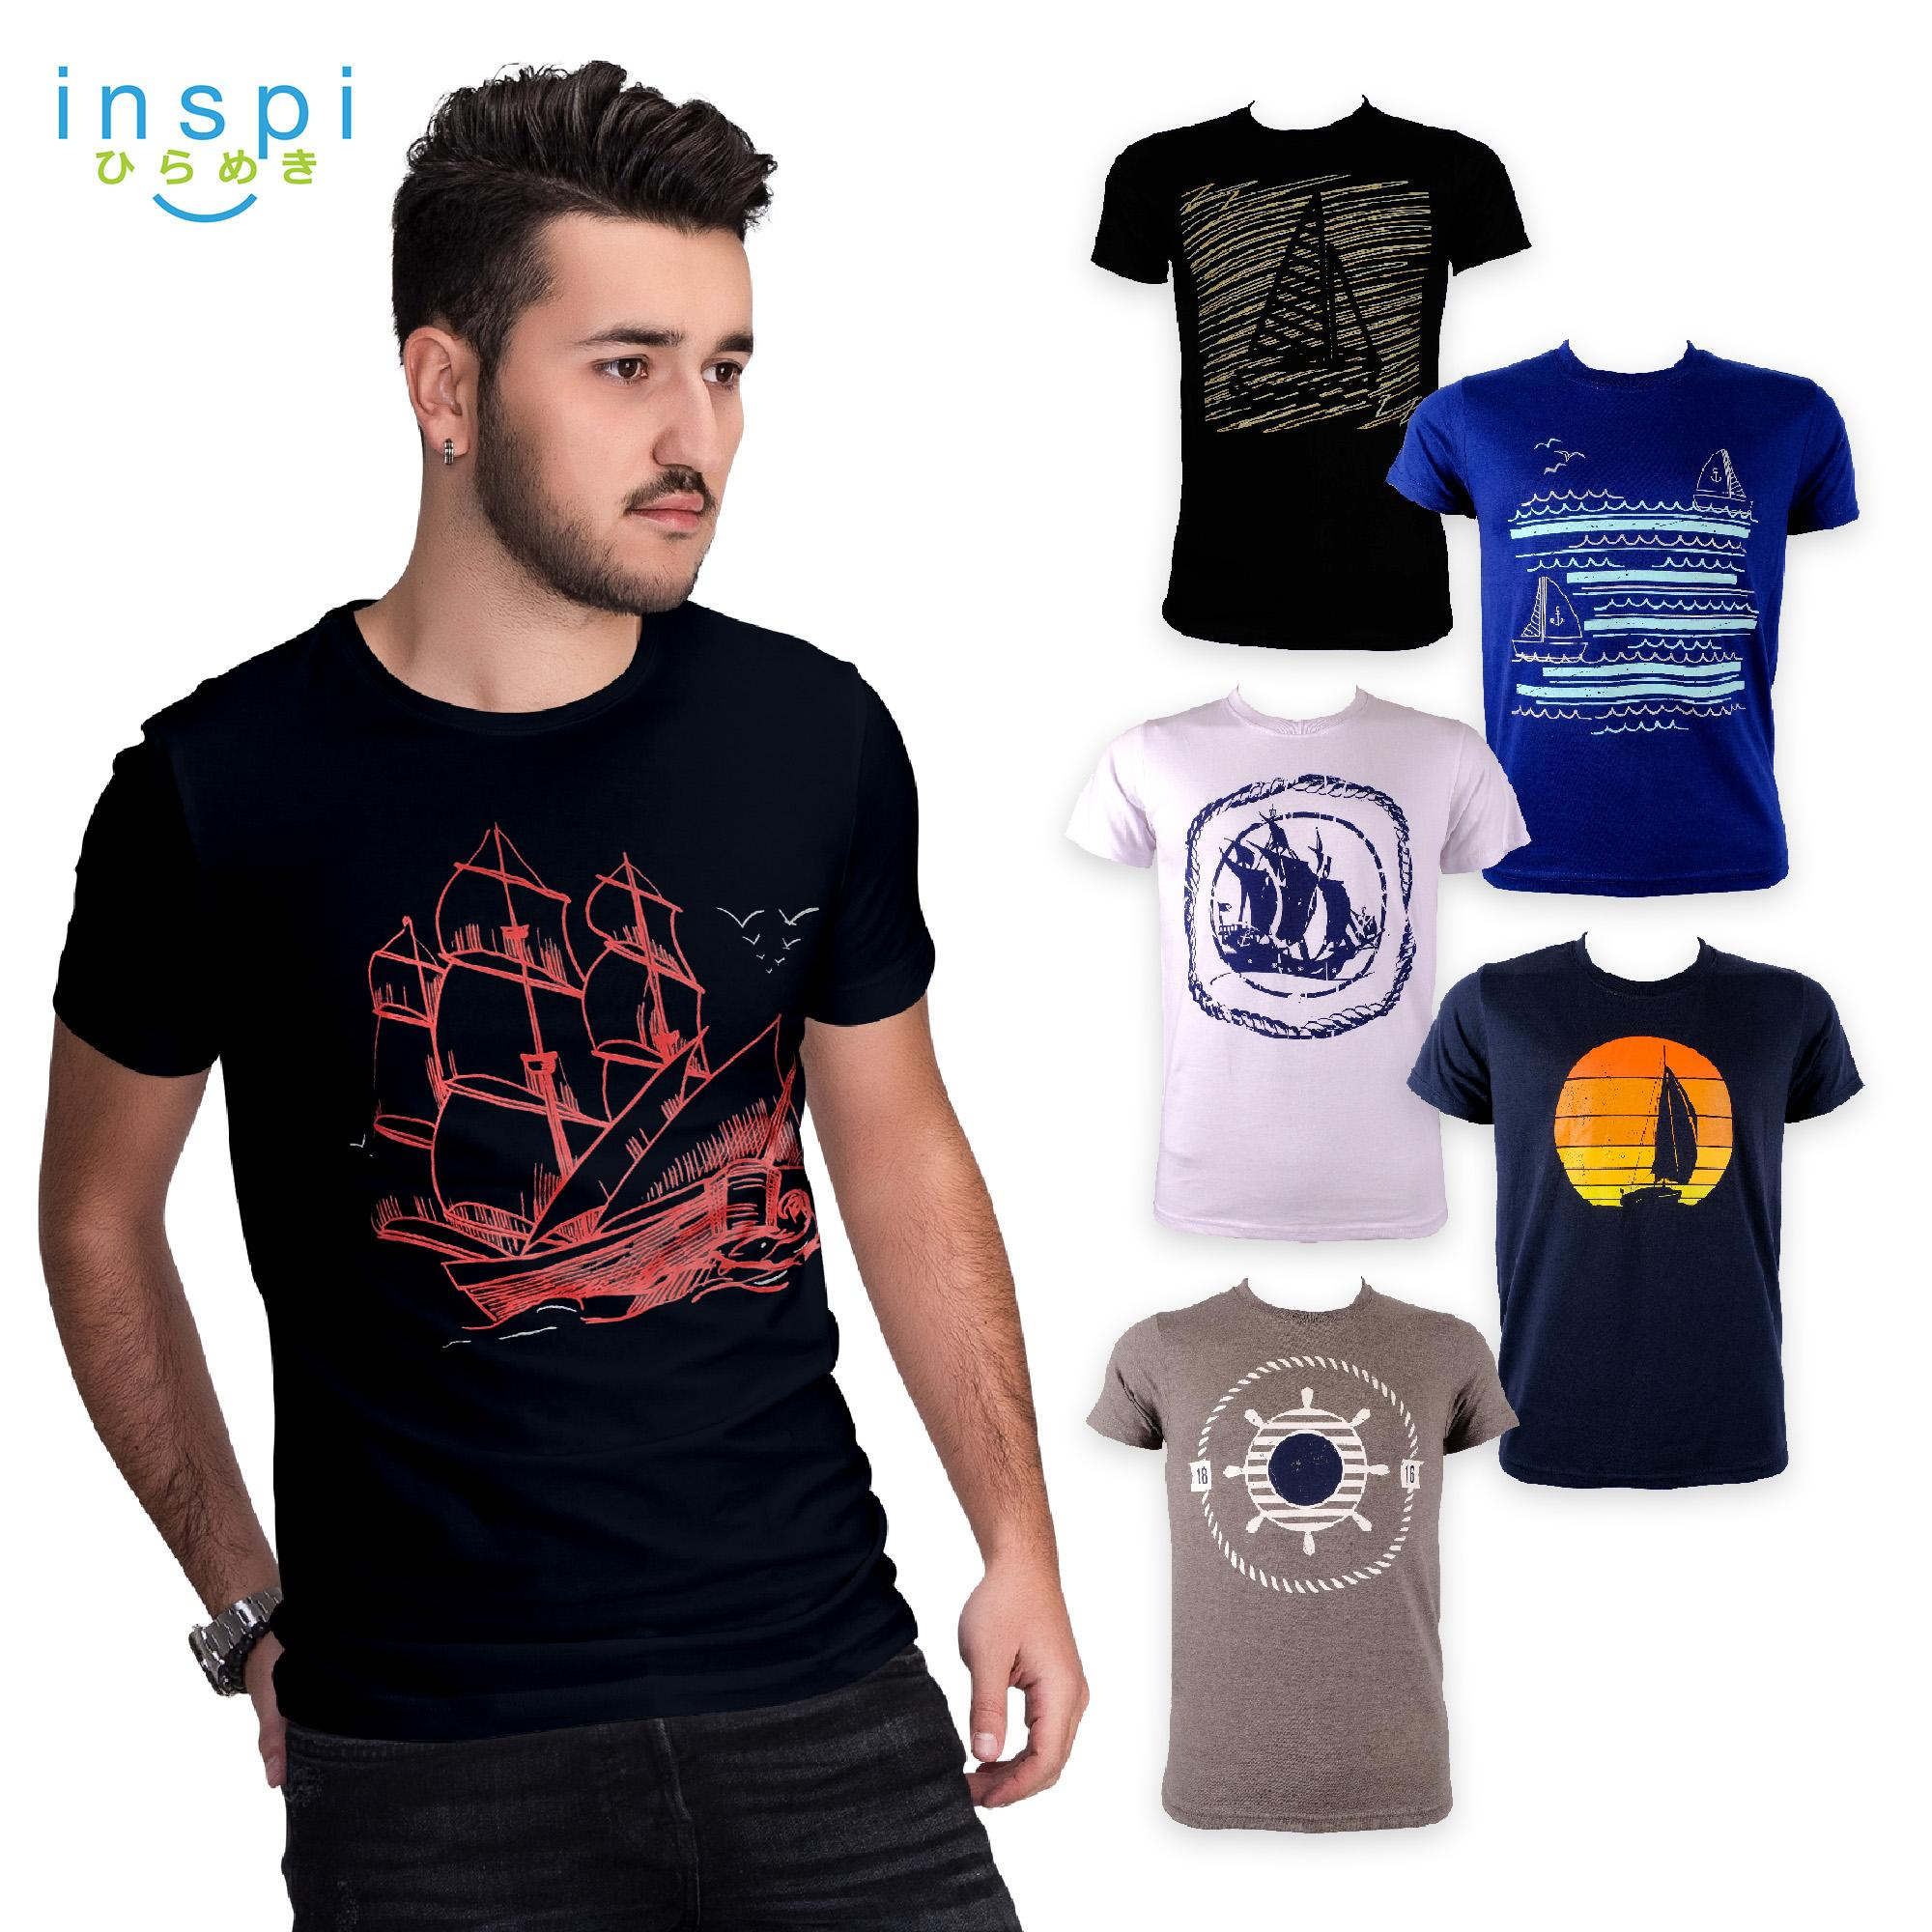 5f89e40dd INSPI Tees Sailing Collection tshirt printed graphic tee Mens t shirt shirts  for men tshirts sale